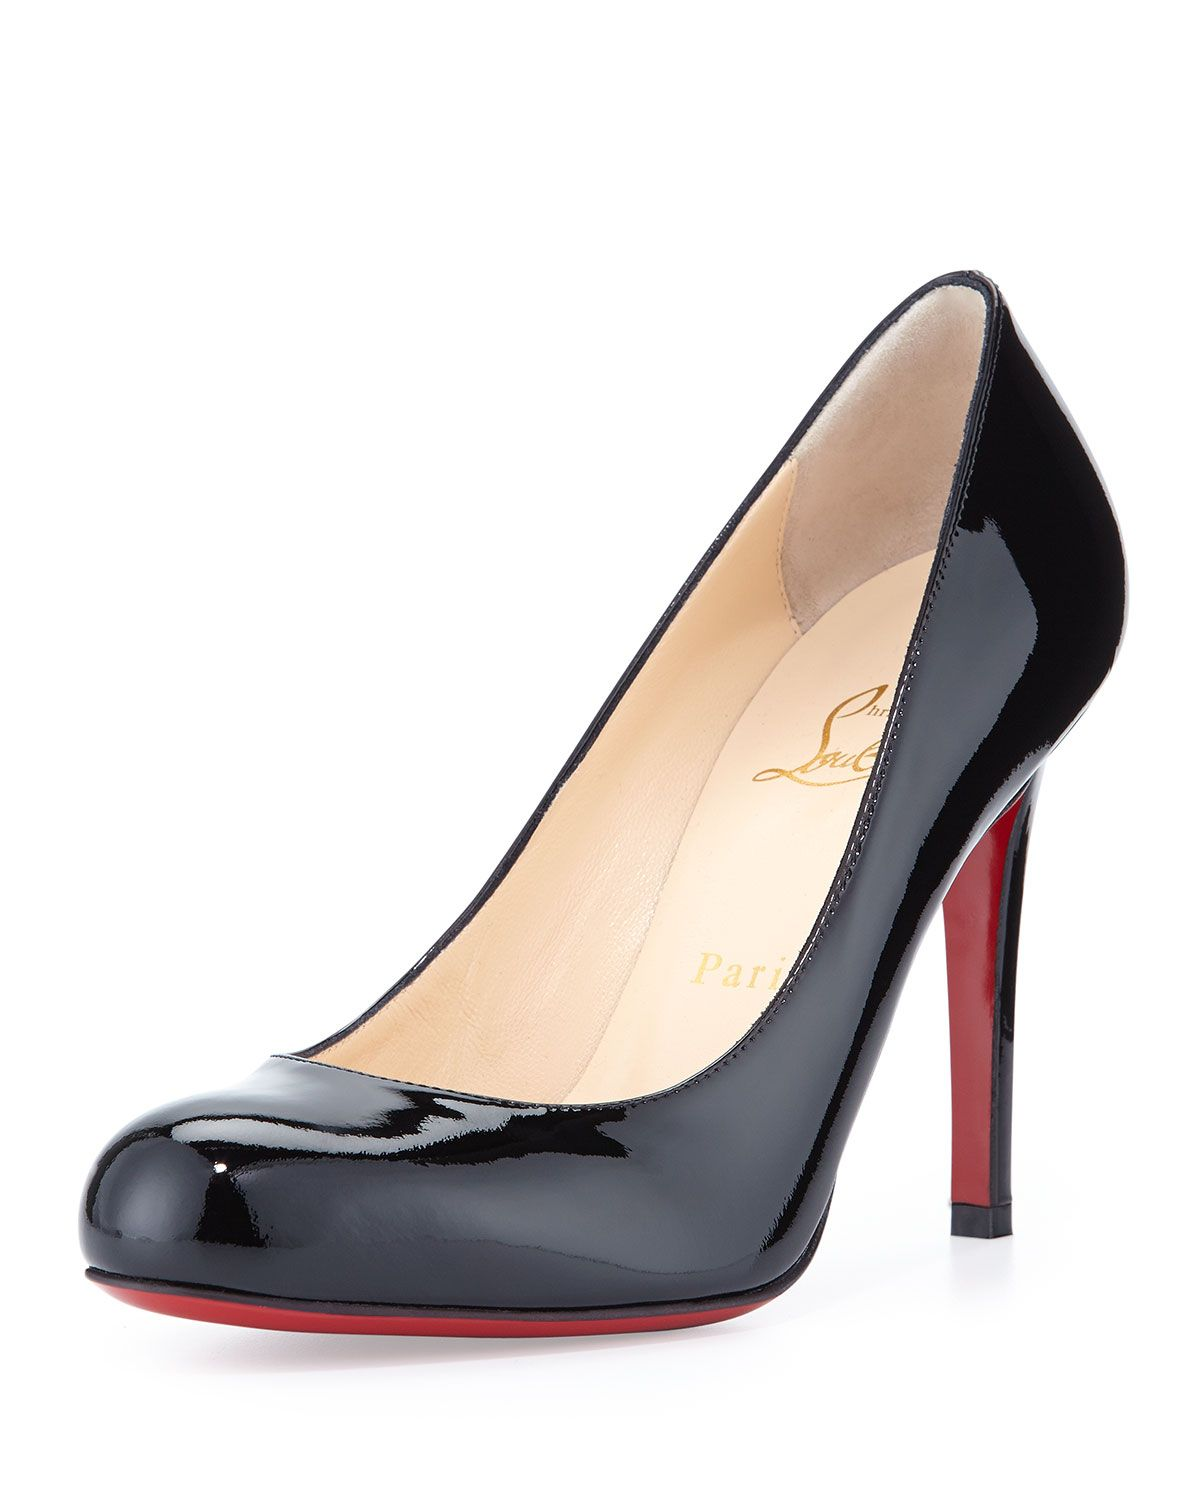 on sale 563be 91d82 Simple Patent Red Sole Pump Black | *Apparel & Accessories ...